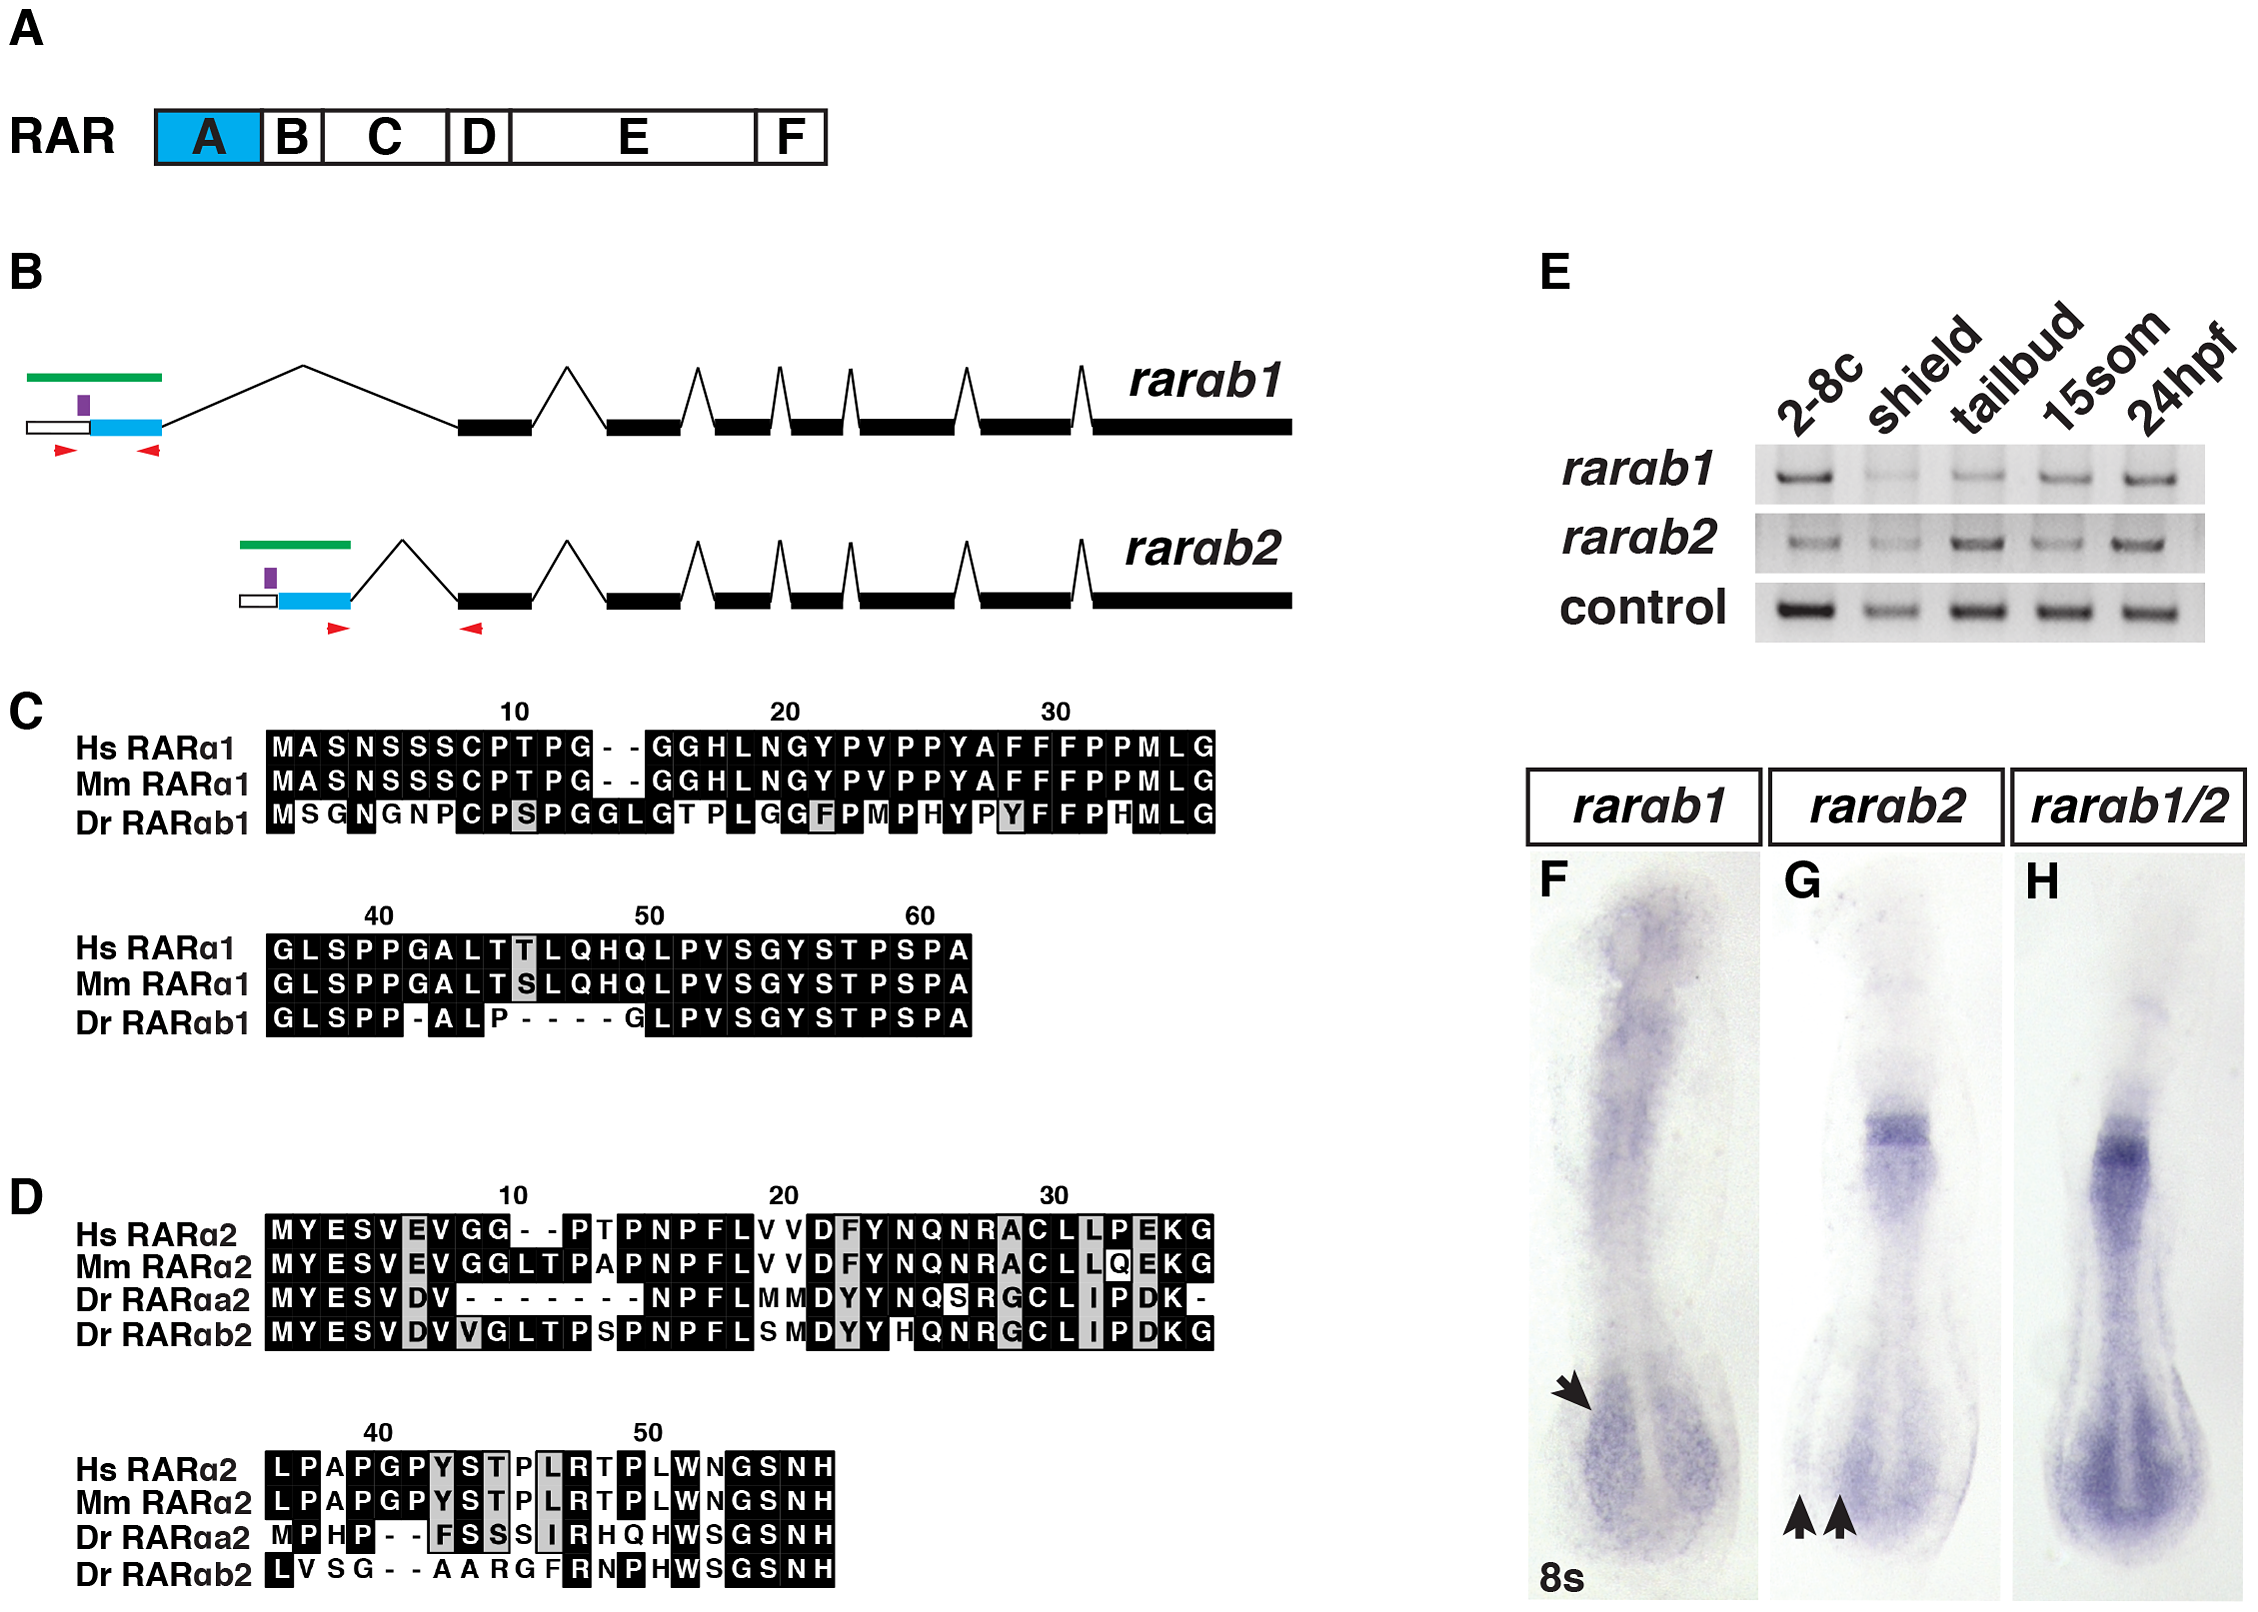 RARαb1 and RARαb2 sequences and expression.